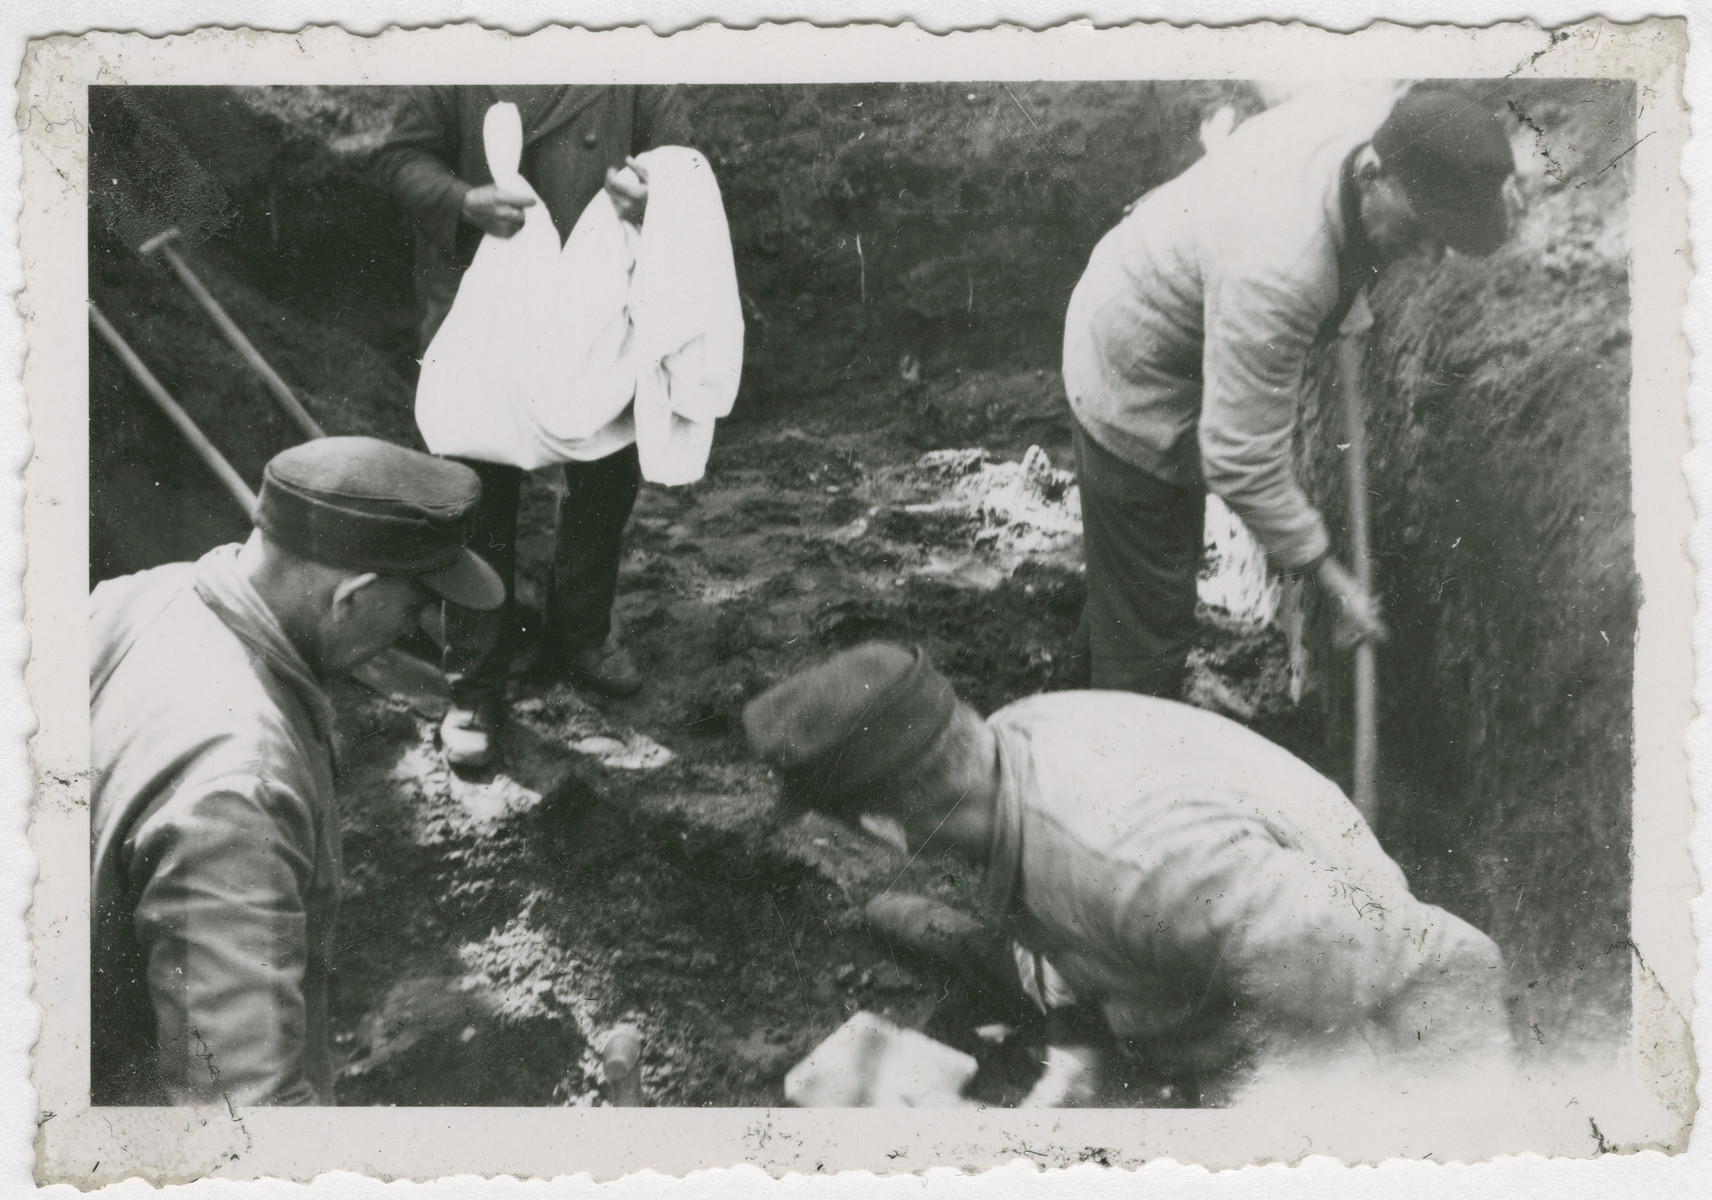 Corpses are exhumed for reburial from a mass grave in either the Buchenwald or Woebbelin concentration camp.